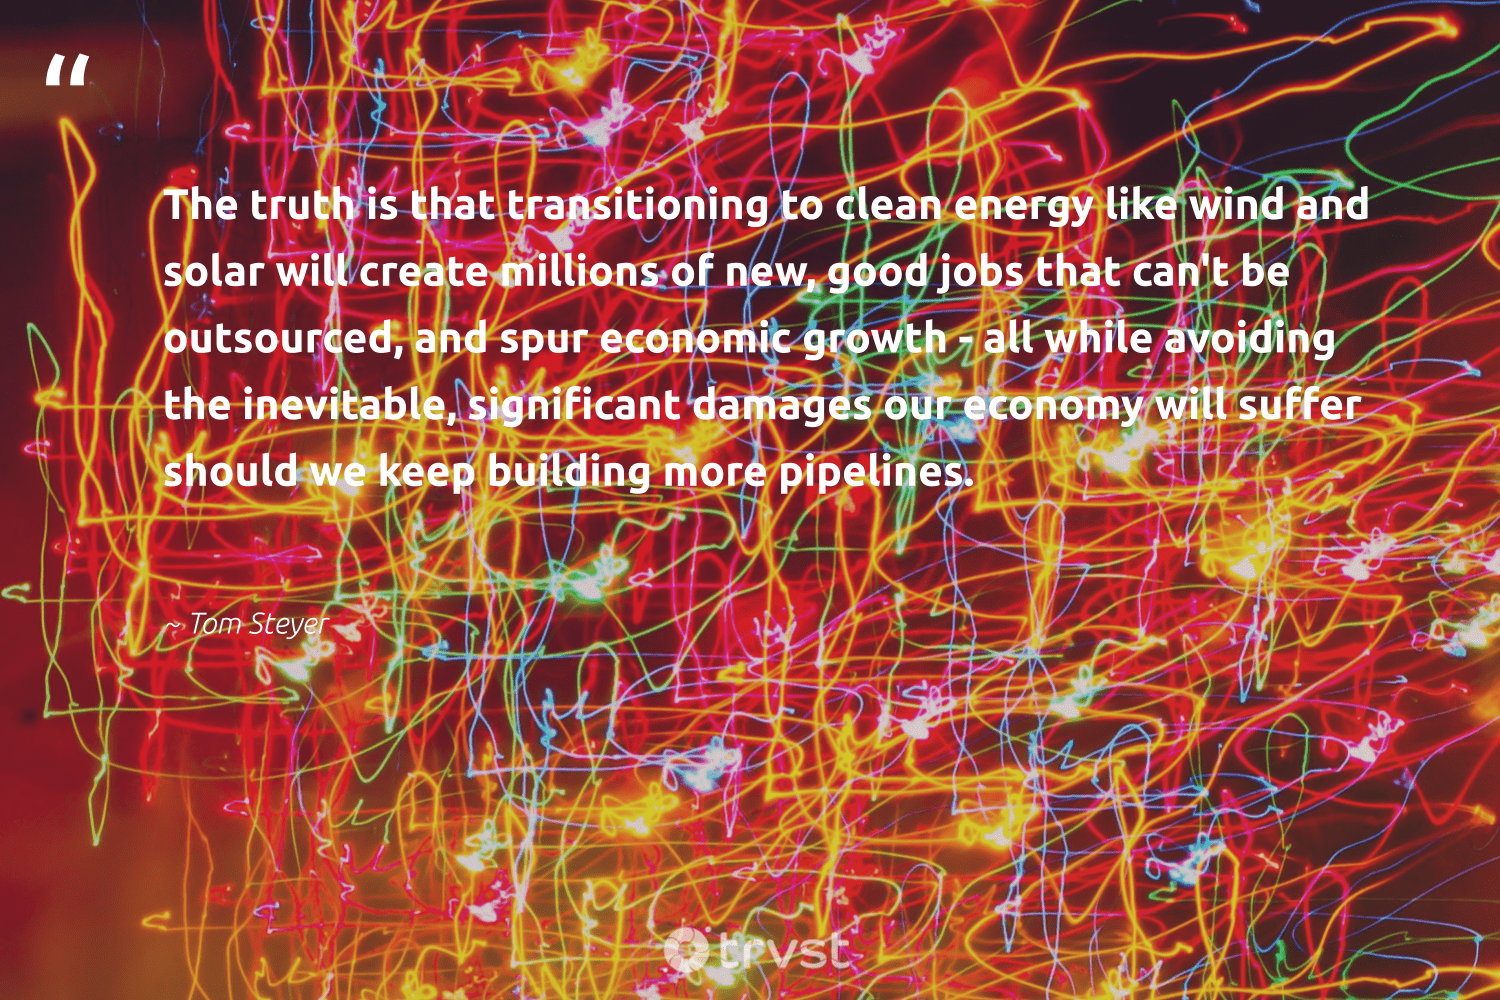 """""""The truth is that transitioning to clean energy like wind and solar will create millions of new, good jobs that can't be outsourced, and spur economic growth - all while avoiding the inevitable, significant damages our economy will suffer should we keep building more pipelines.""""  - Tom Steyer #trvst #quotes #renewableenergy #energy #cleanenergy #solar #truth #greenenergy #sustainability #carbonfree #impact #renewable"""